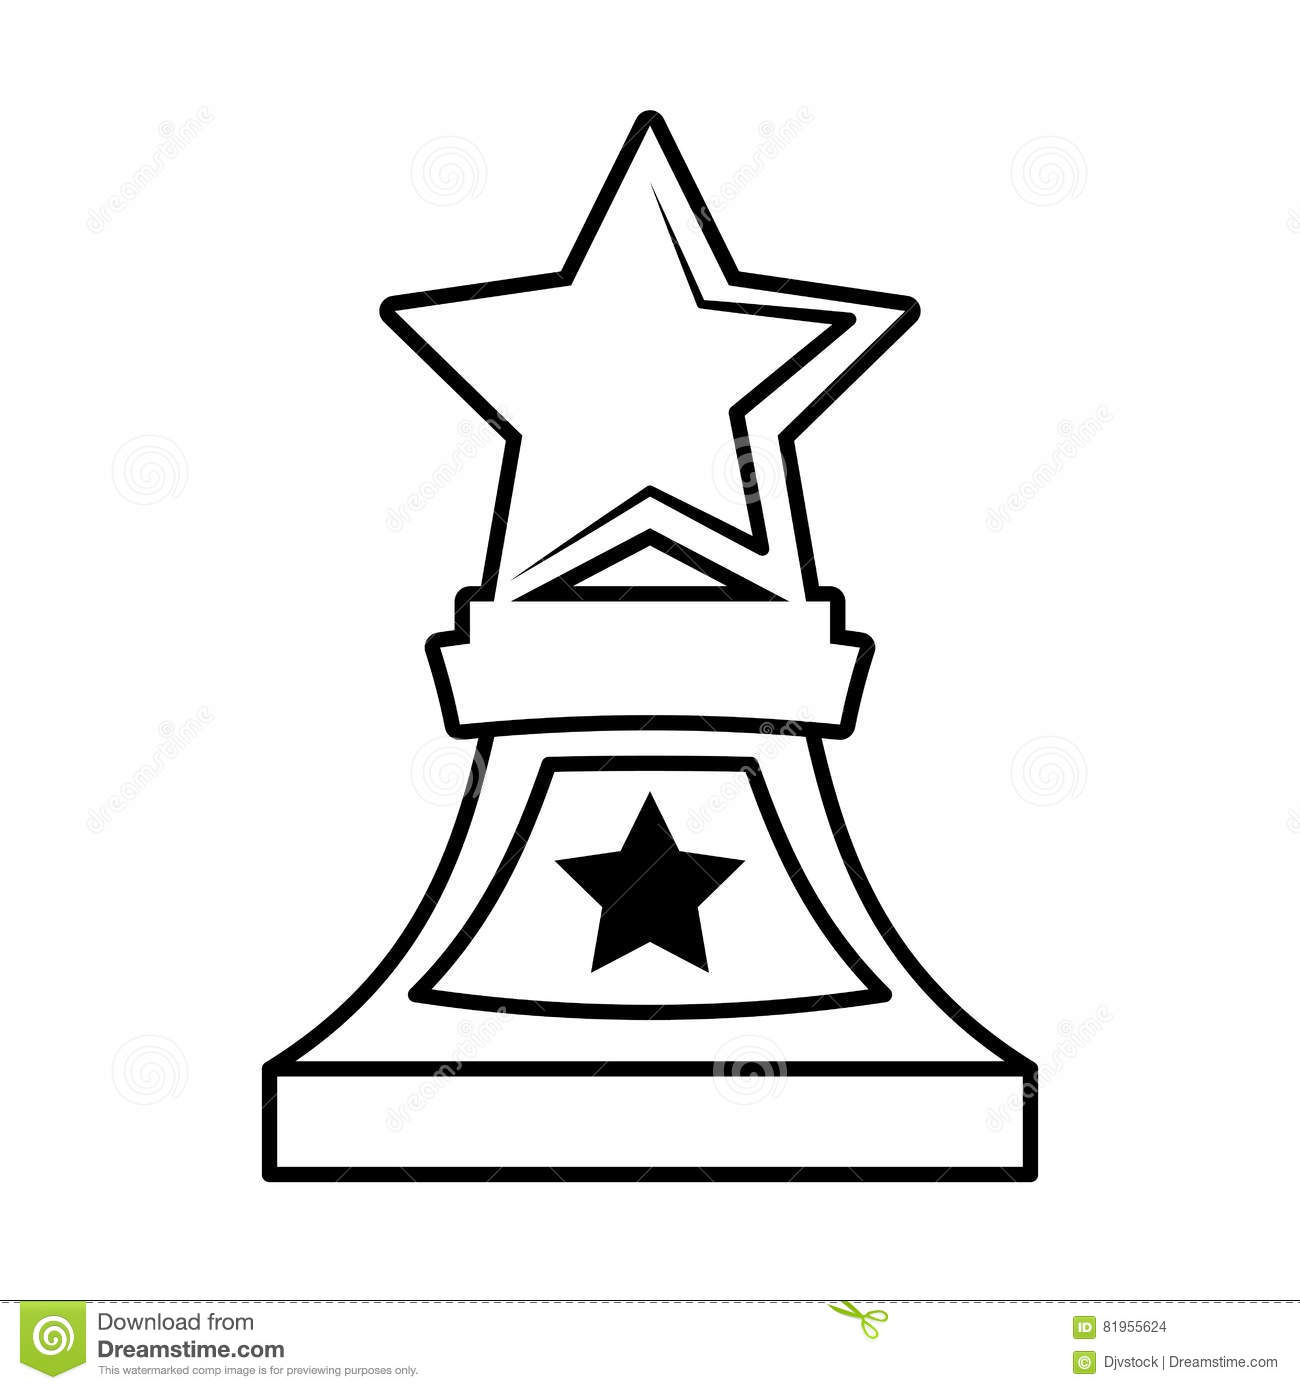 Trophy Outline Clipart also Clipart Gecko Reptile as well Moose Drawings together with Disney Jiminy Cricket Christmas Coloring Pages as well Stock Illustration Set Outline Stroke Animal Icon Vector Illustration Image42212482. on black animal outlines